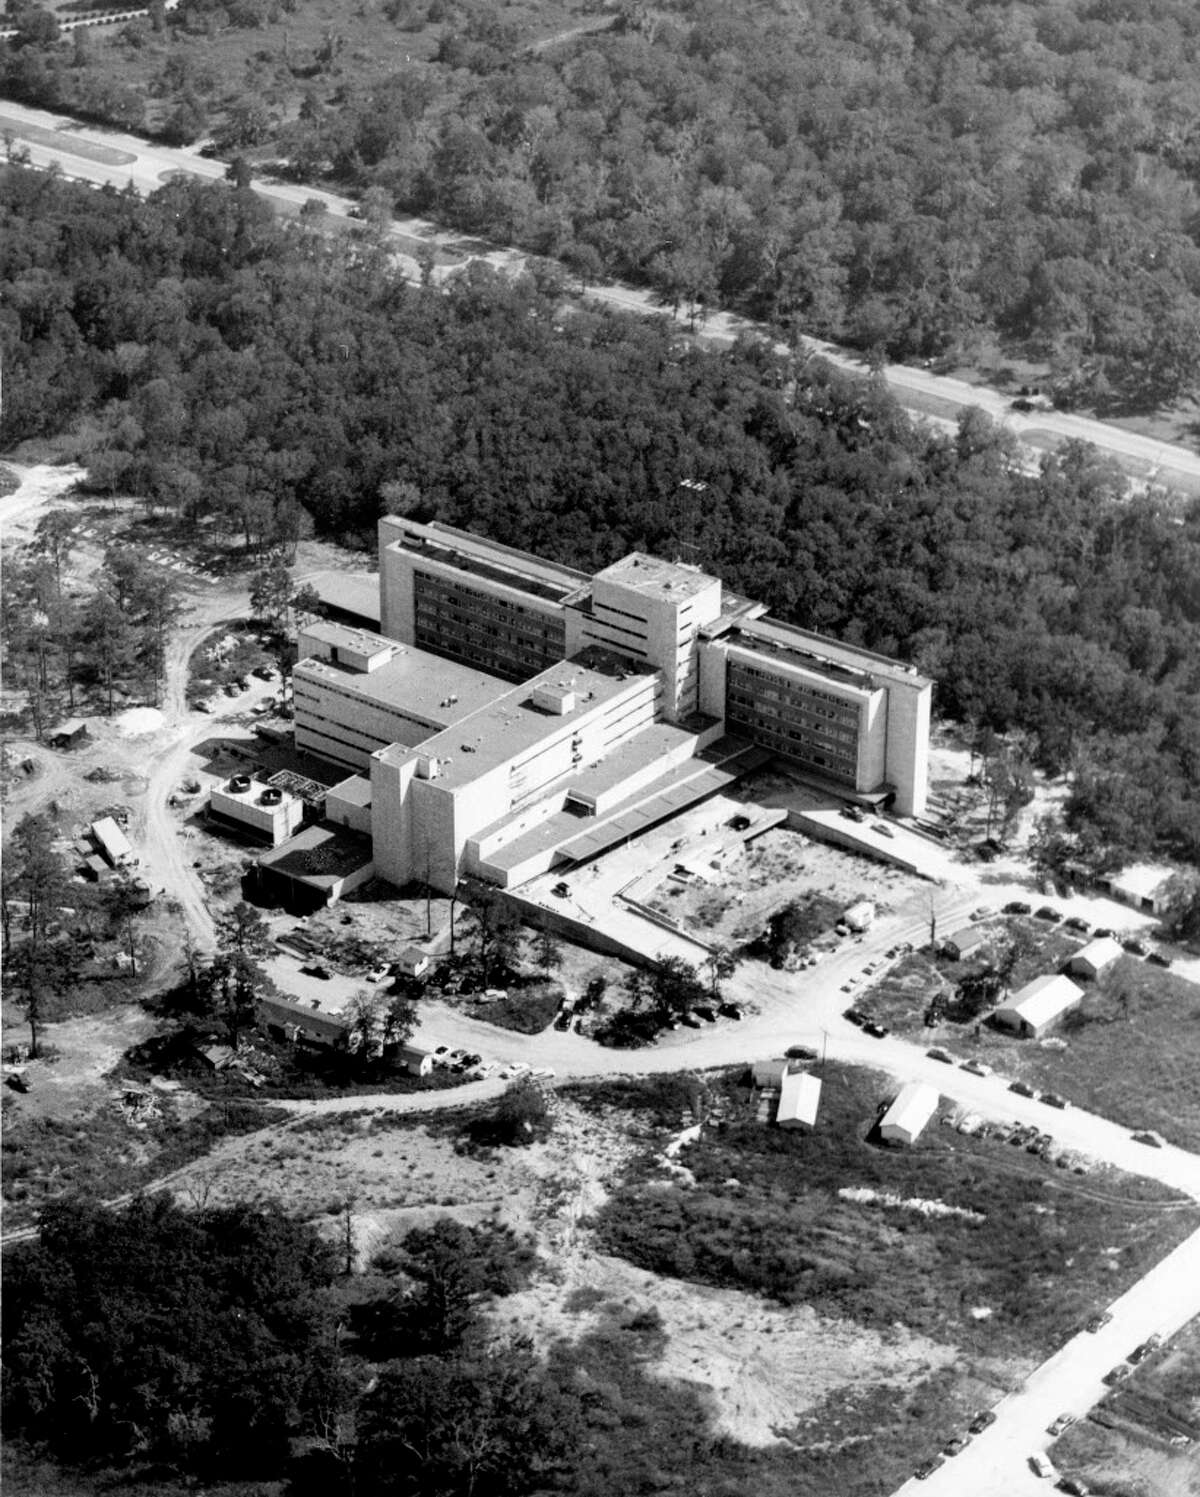 Construction of MD Anderson Hospital for Cancer Research was ongoing in 1952. The school opened its new center in 1954, when 46 patients were moved in from its original facility.